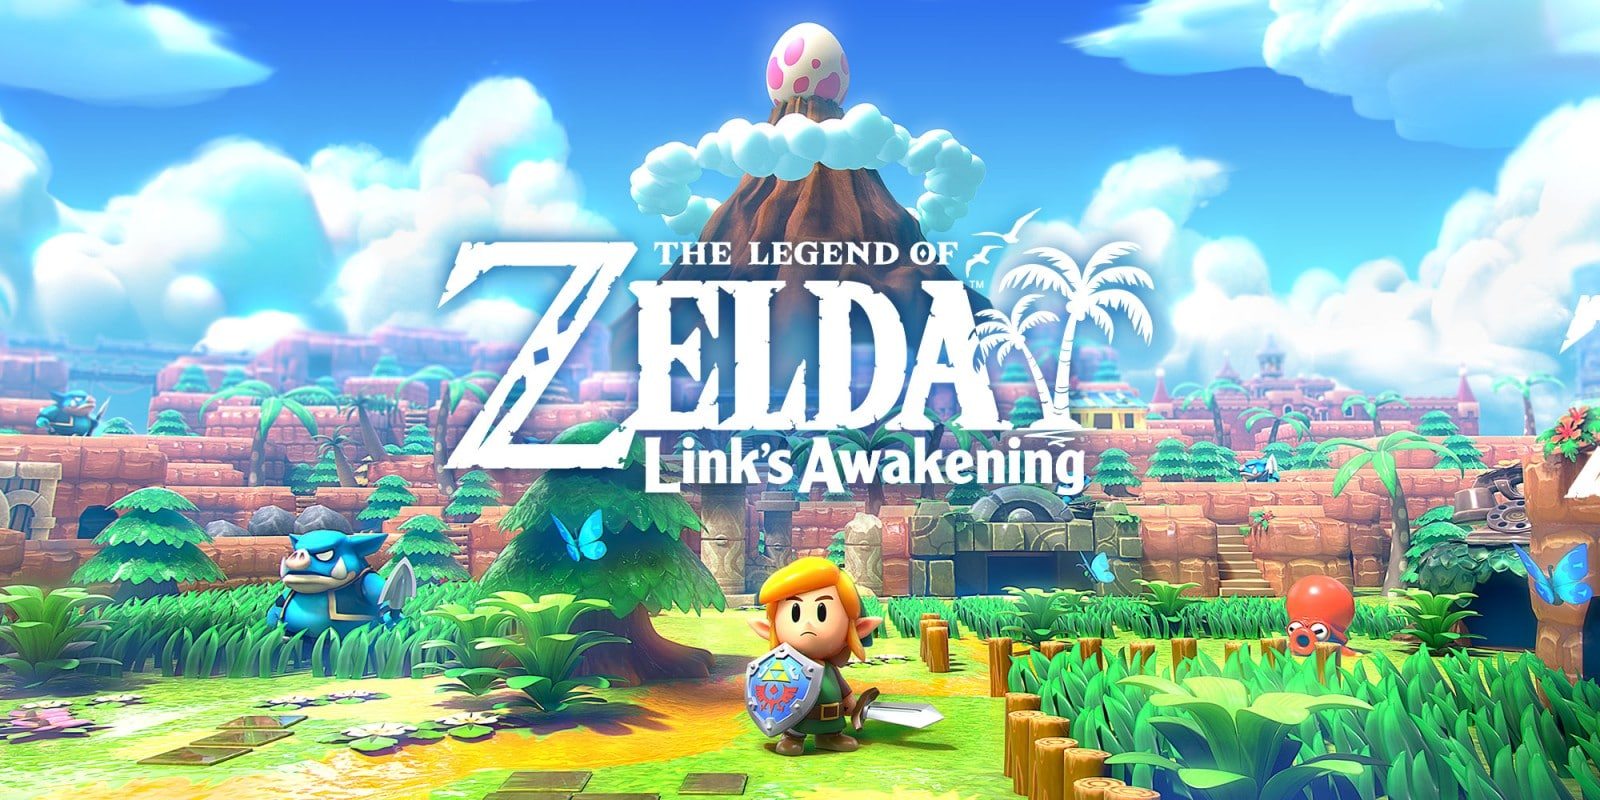 The Legend Of Zelda Link S Awakening Game Free Download For